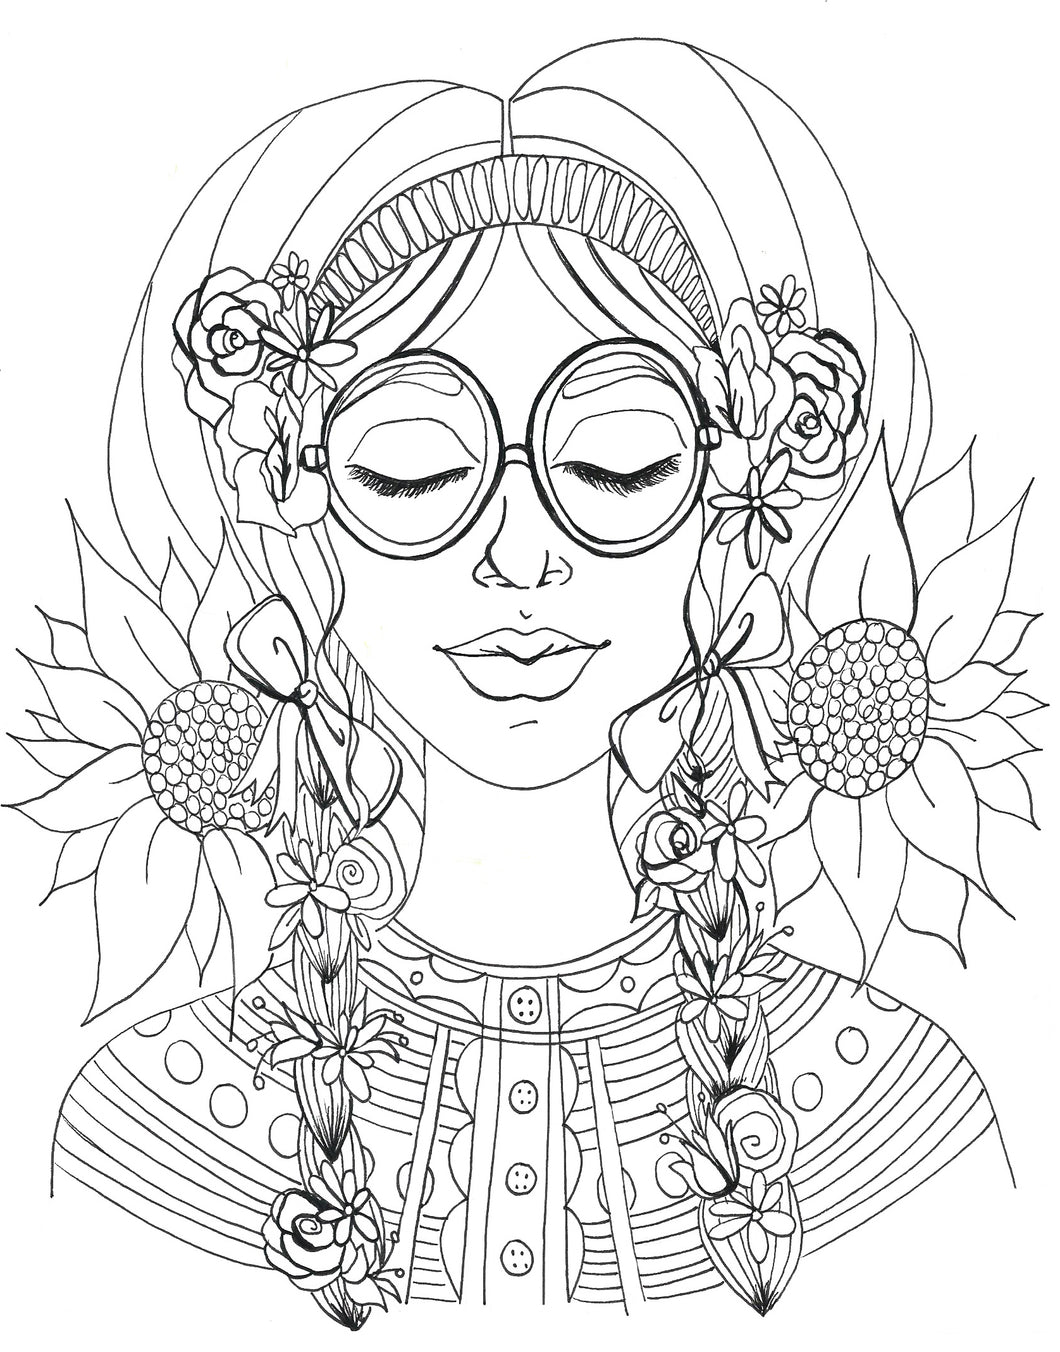 Sunflower Dreams Coloring Page